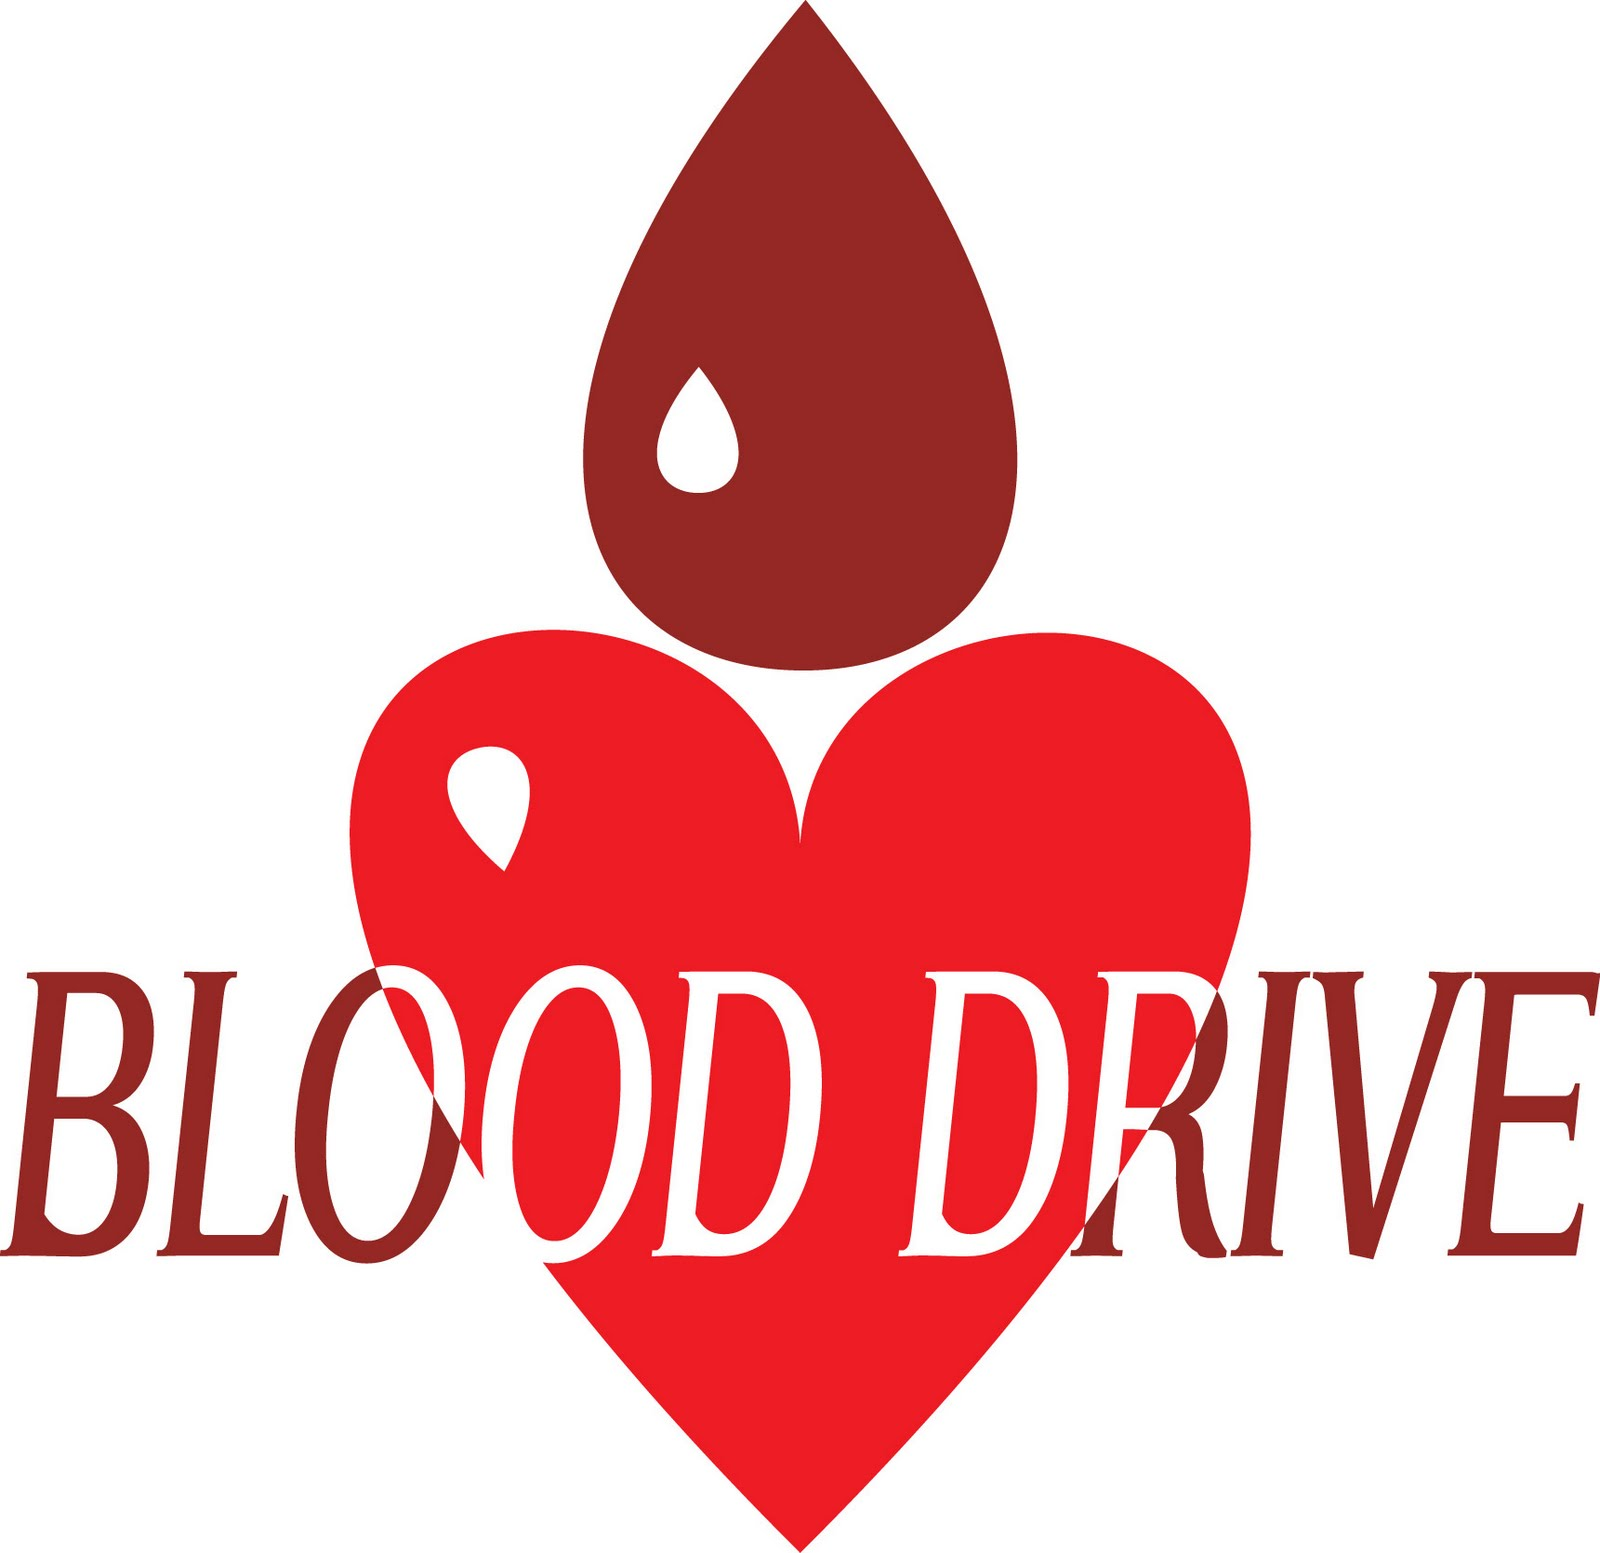 ... Blood drive thank you clipart ...